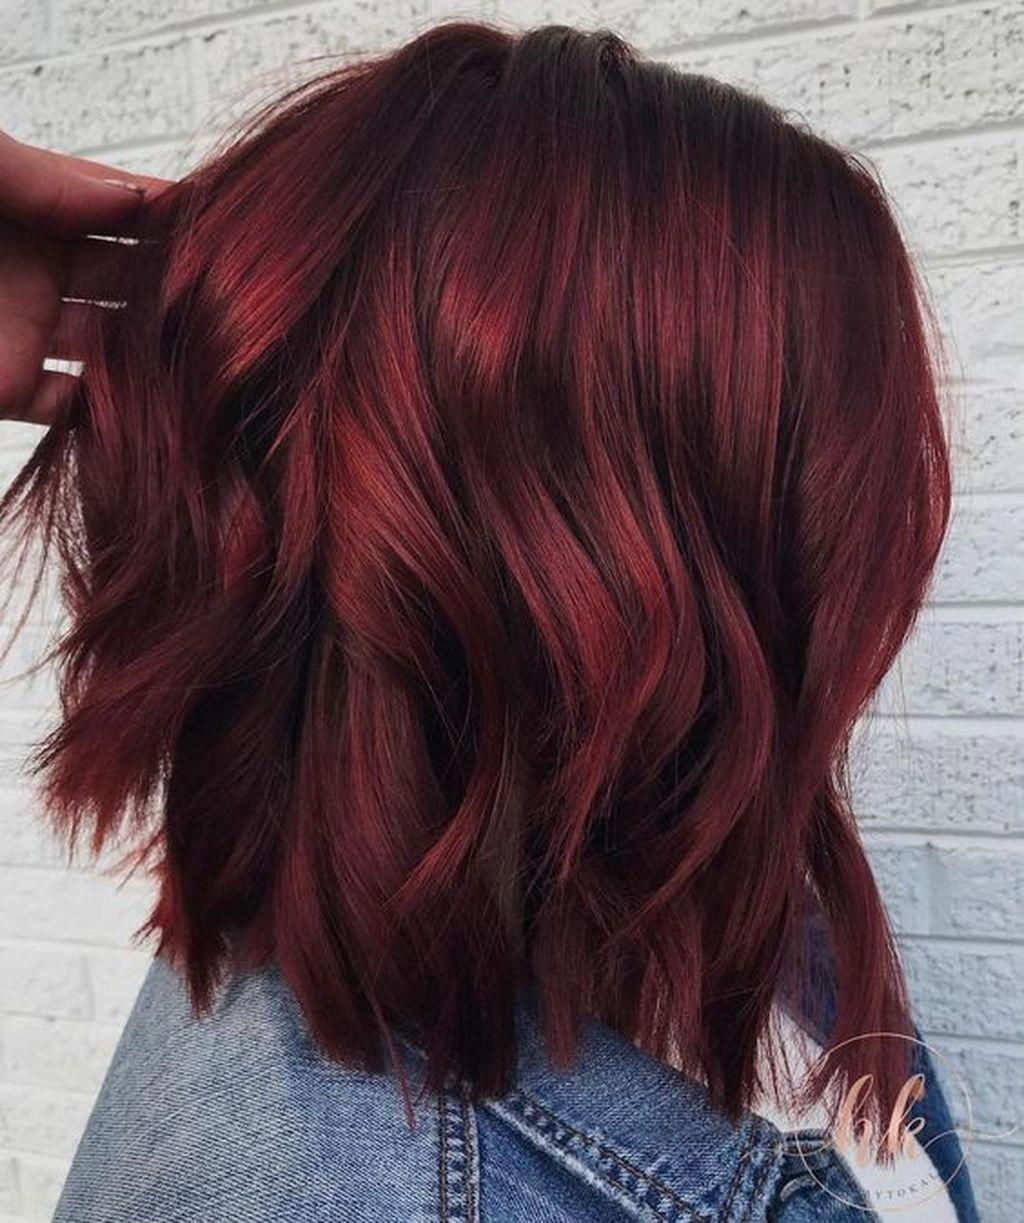 Hair Ideas I Need A New Hairstyle For Short Hair Hair Styling Tips For Short Hair 20190531 Wine Hair Short Red Hair Wine Hair Color